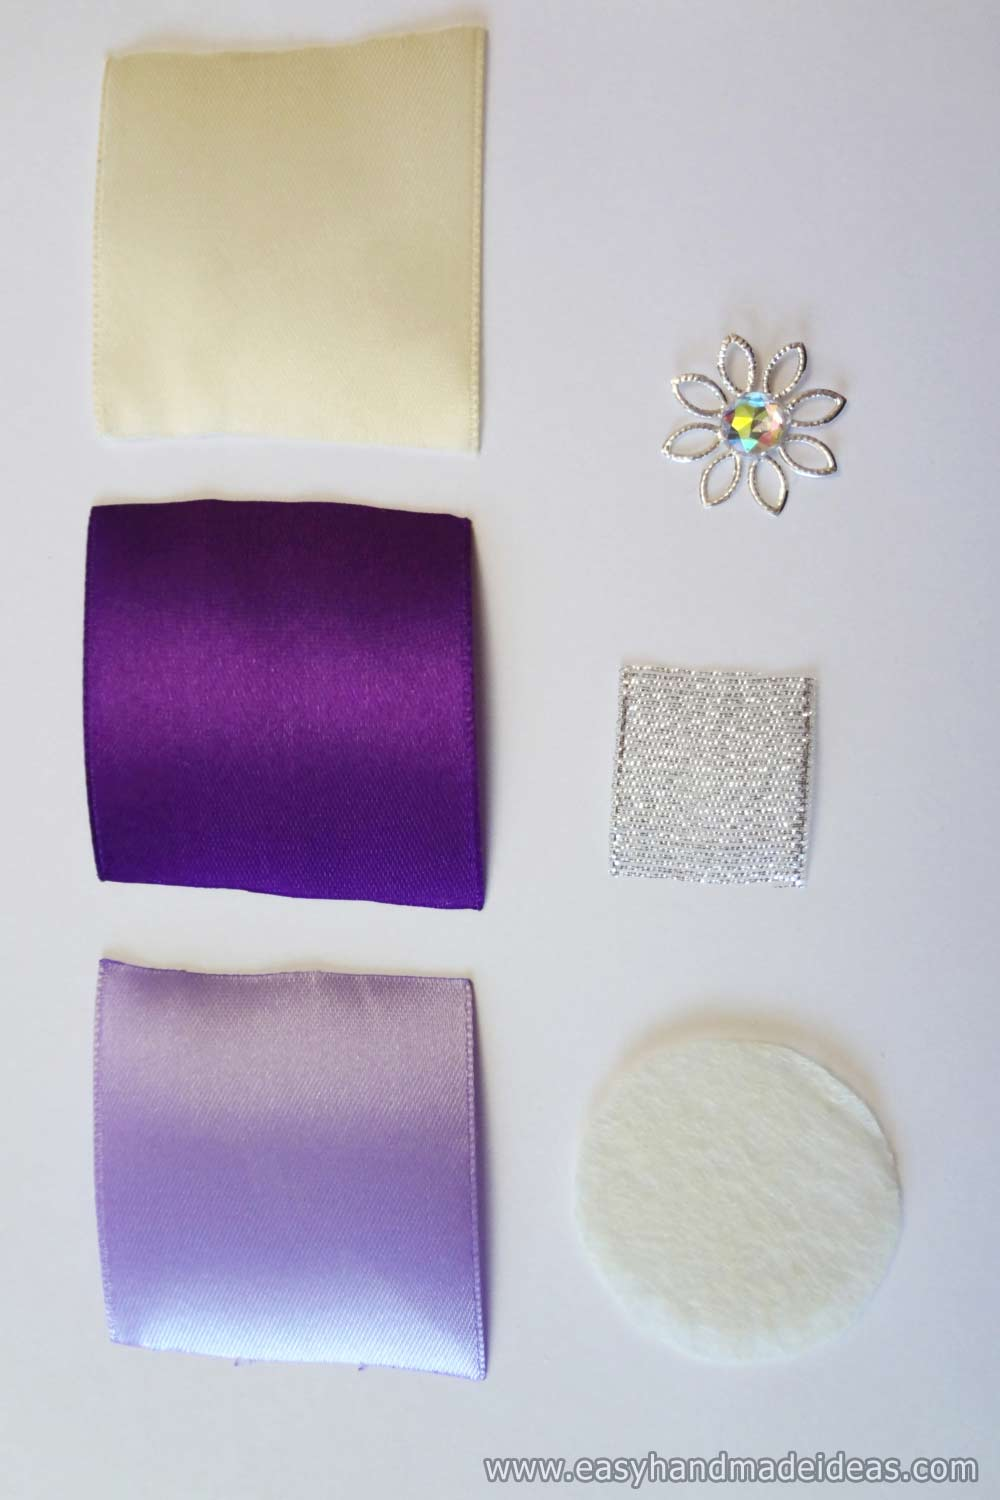 The Pieces of Ribbon